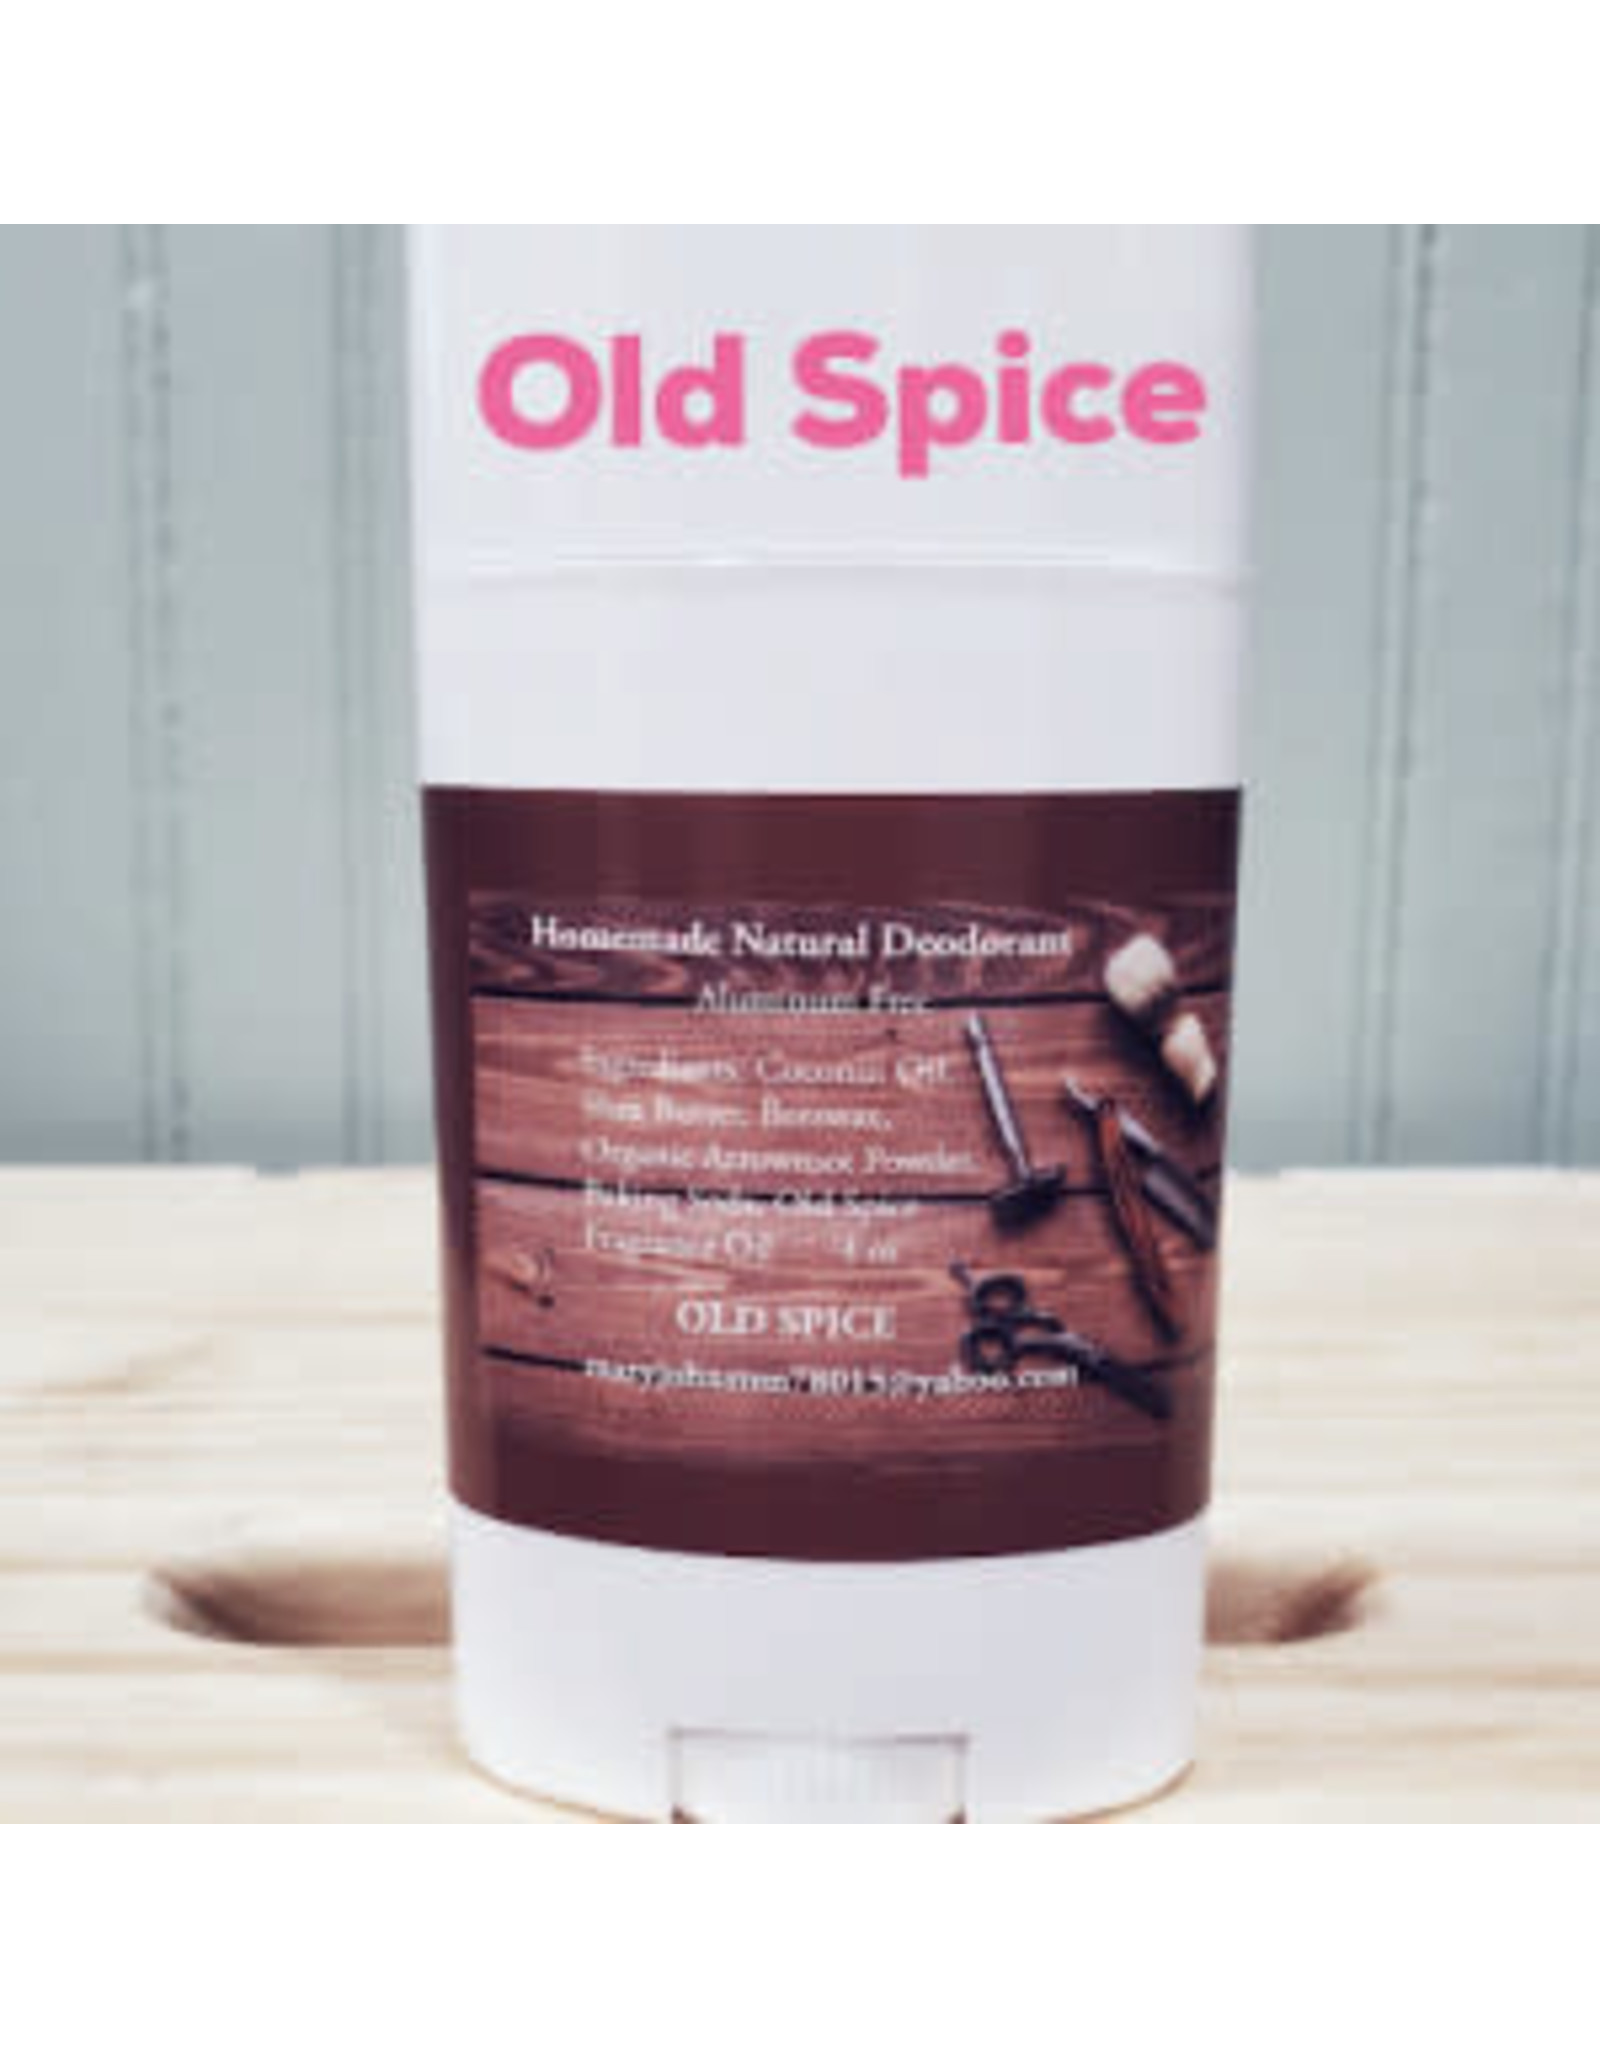 Fancy Goat Boutique Homemade Old Spice